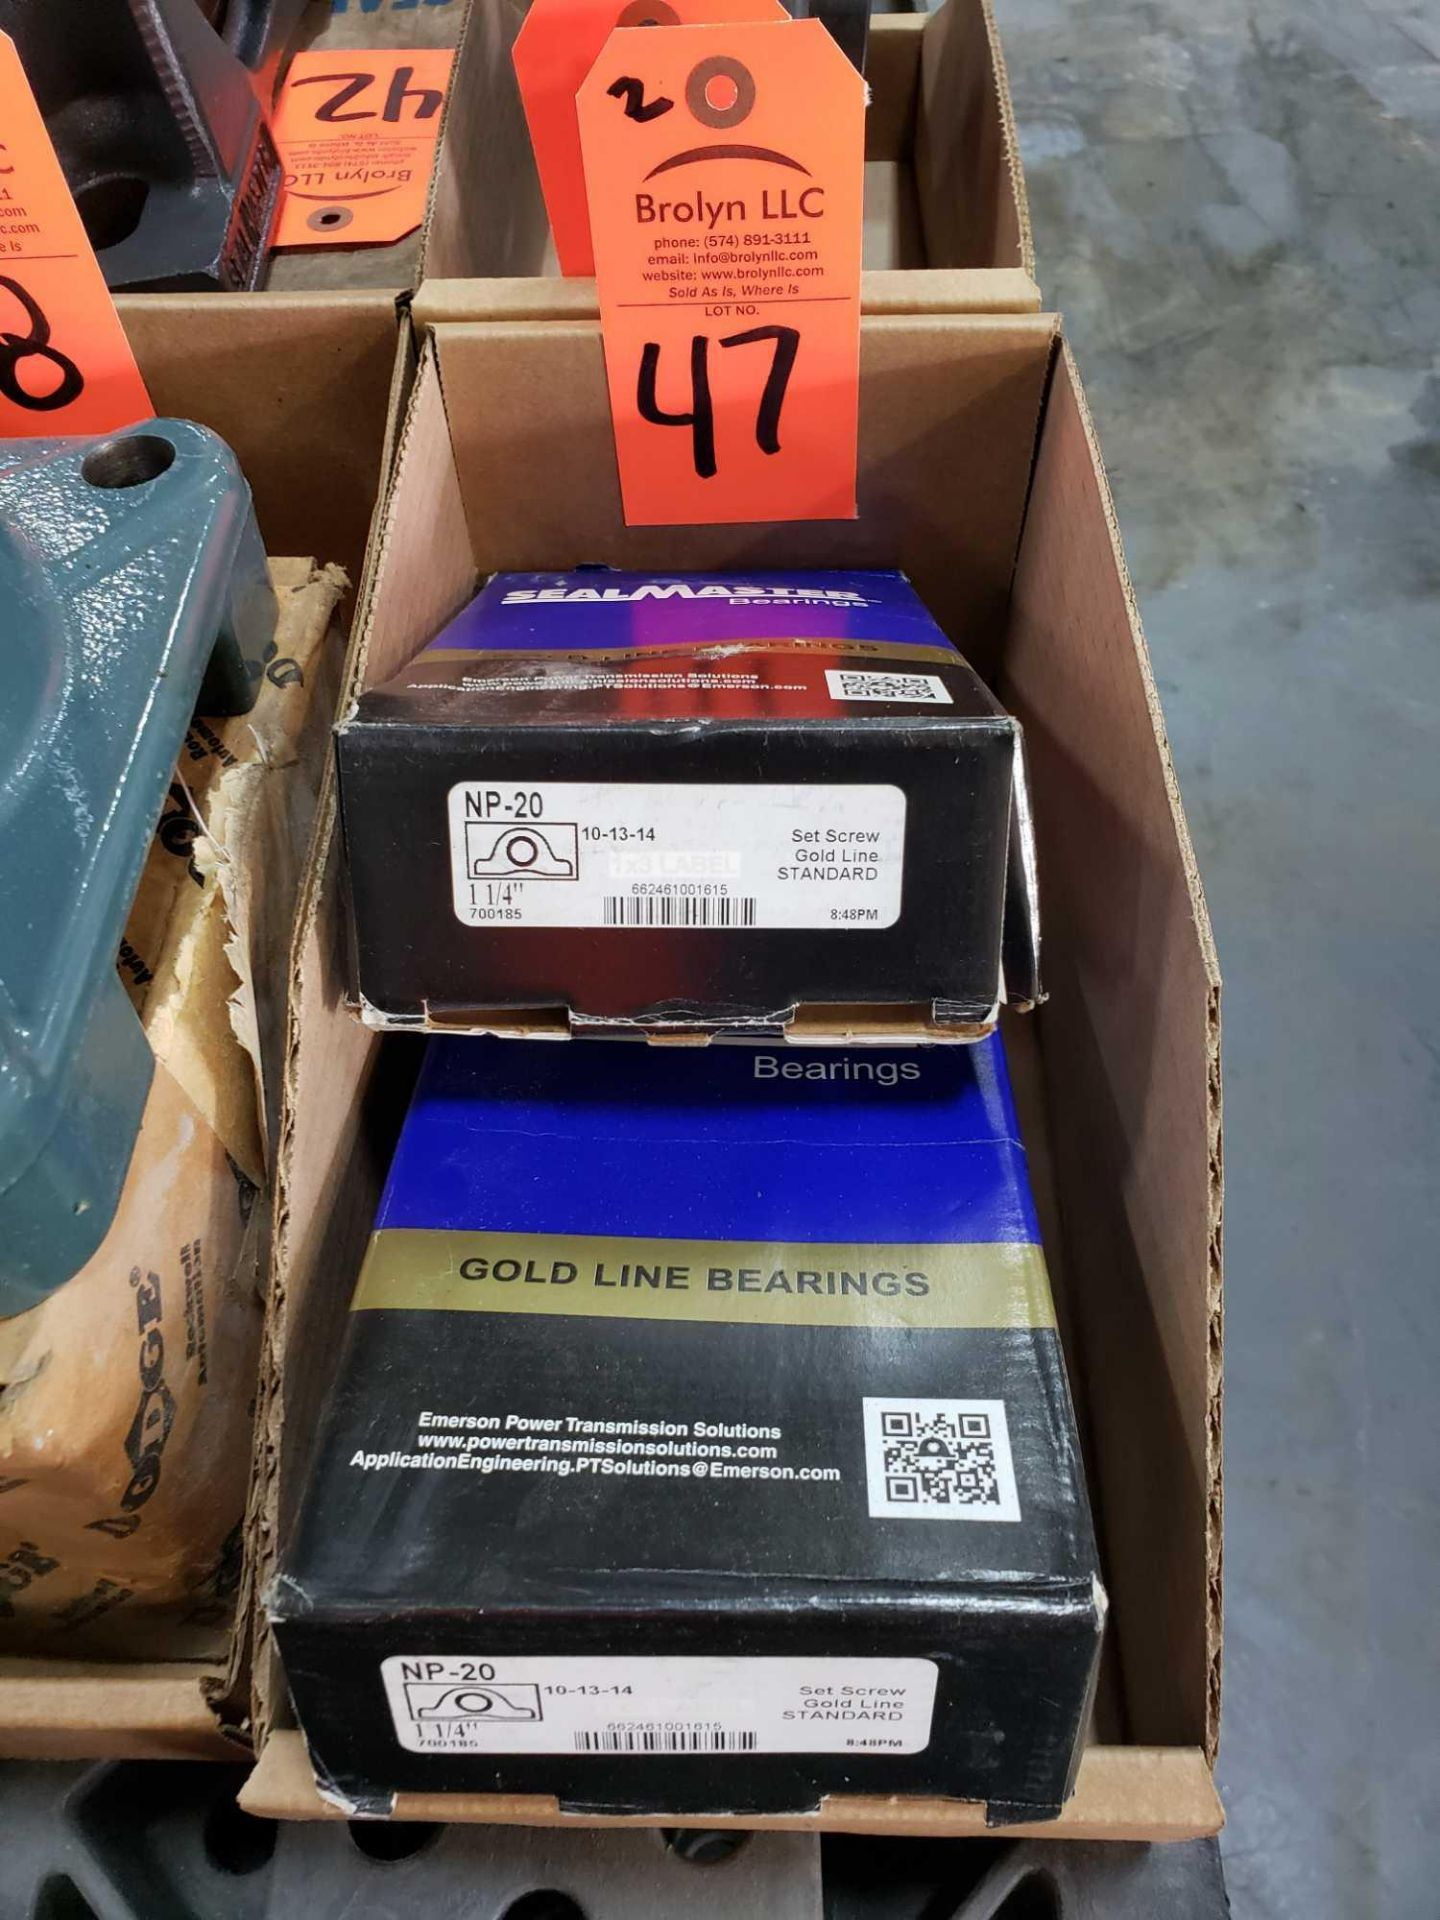 Lot 47 - Qty 2 - Sealmaster Model NP-20 bearings. New in boxes.